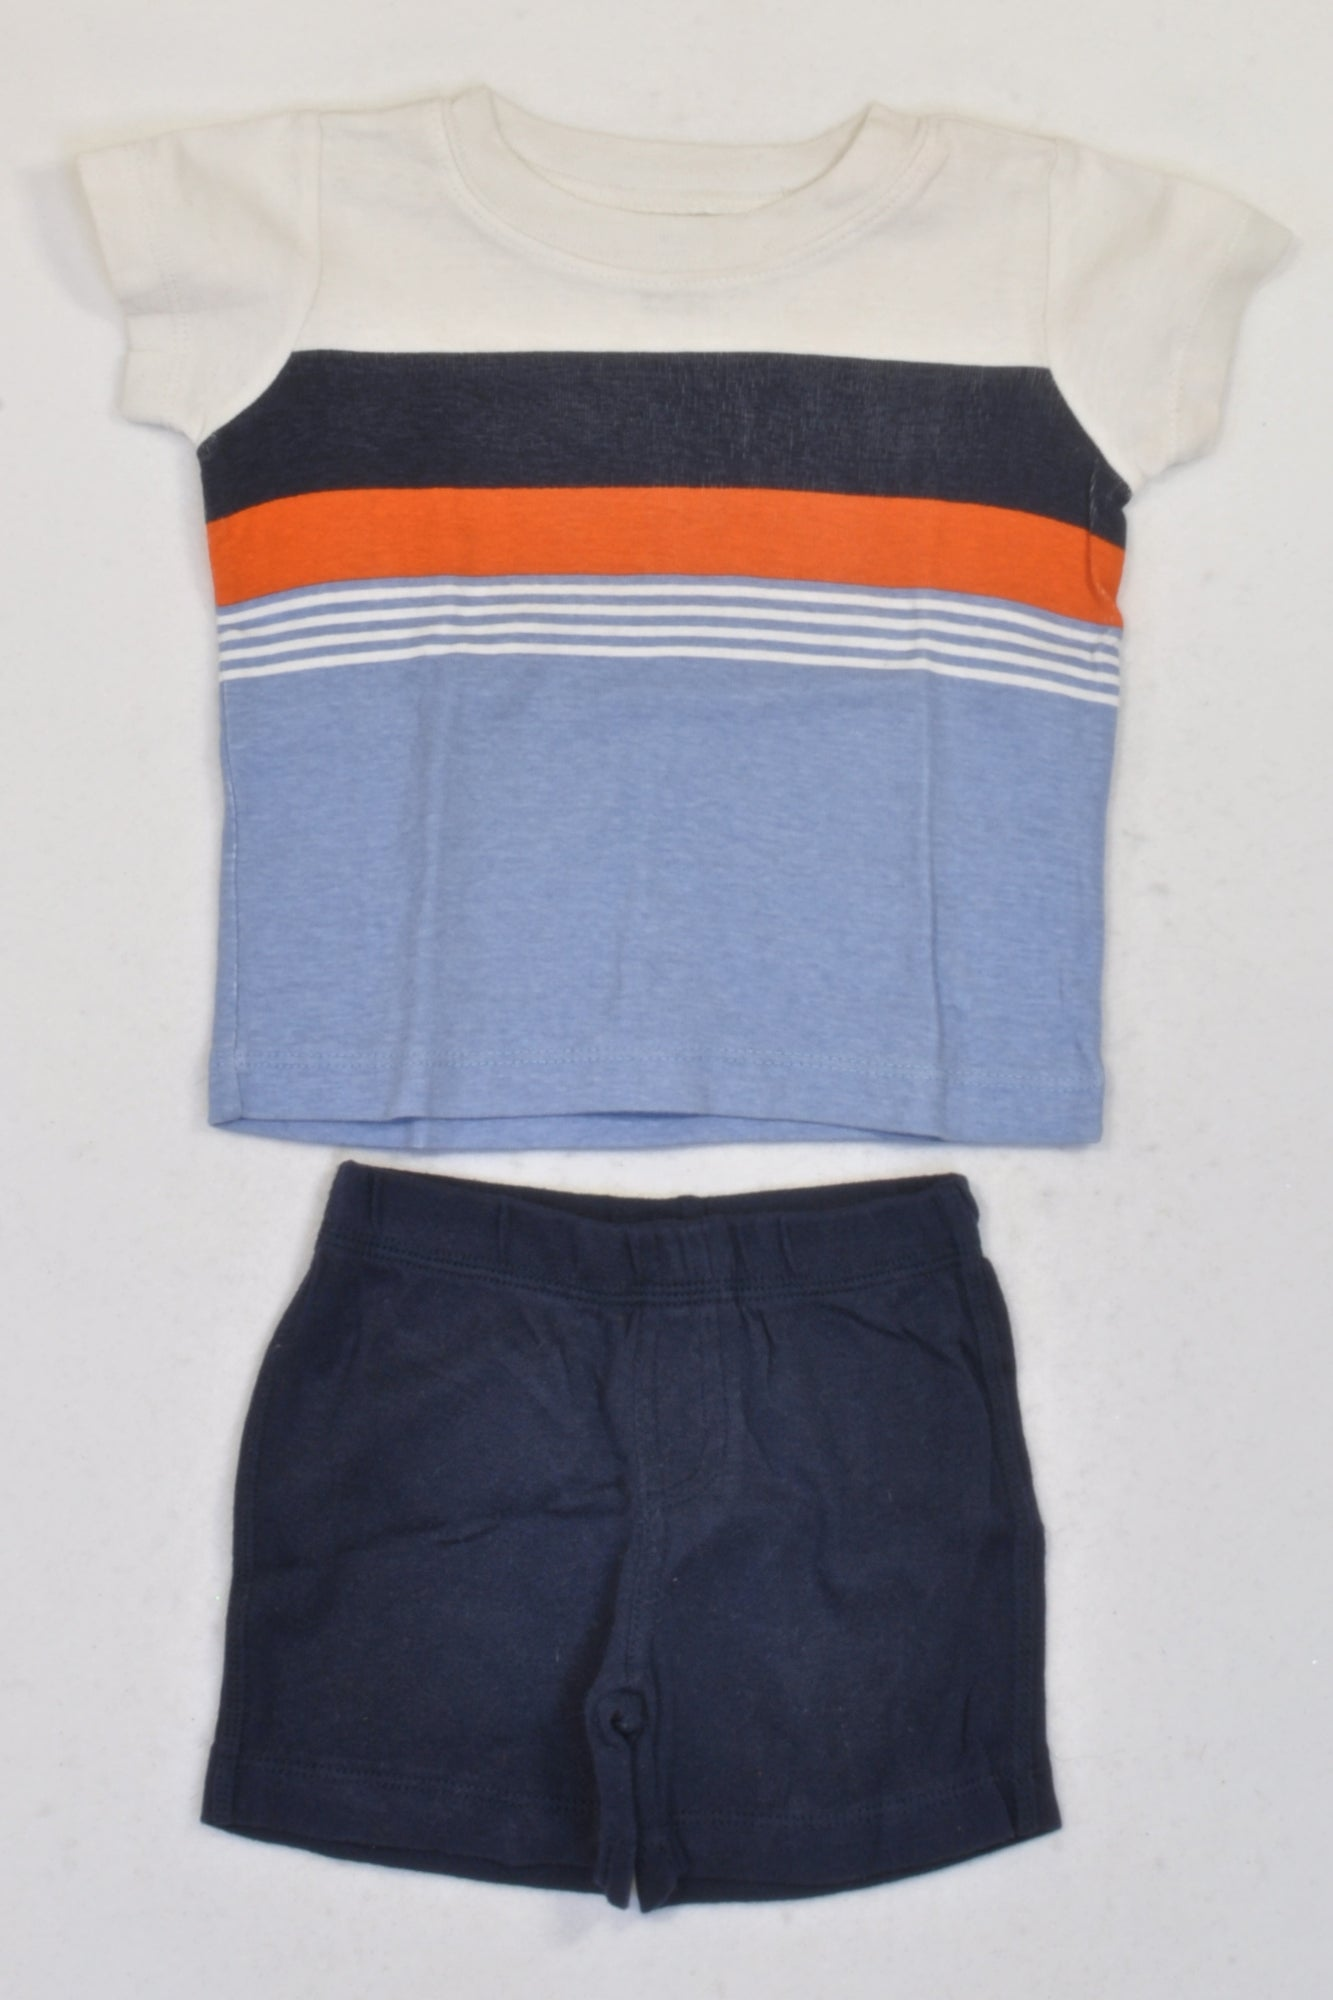 Carter's Blue & Orange Stripe T-shirt & Navy Shorts Outfit Boys 6-9 months